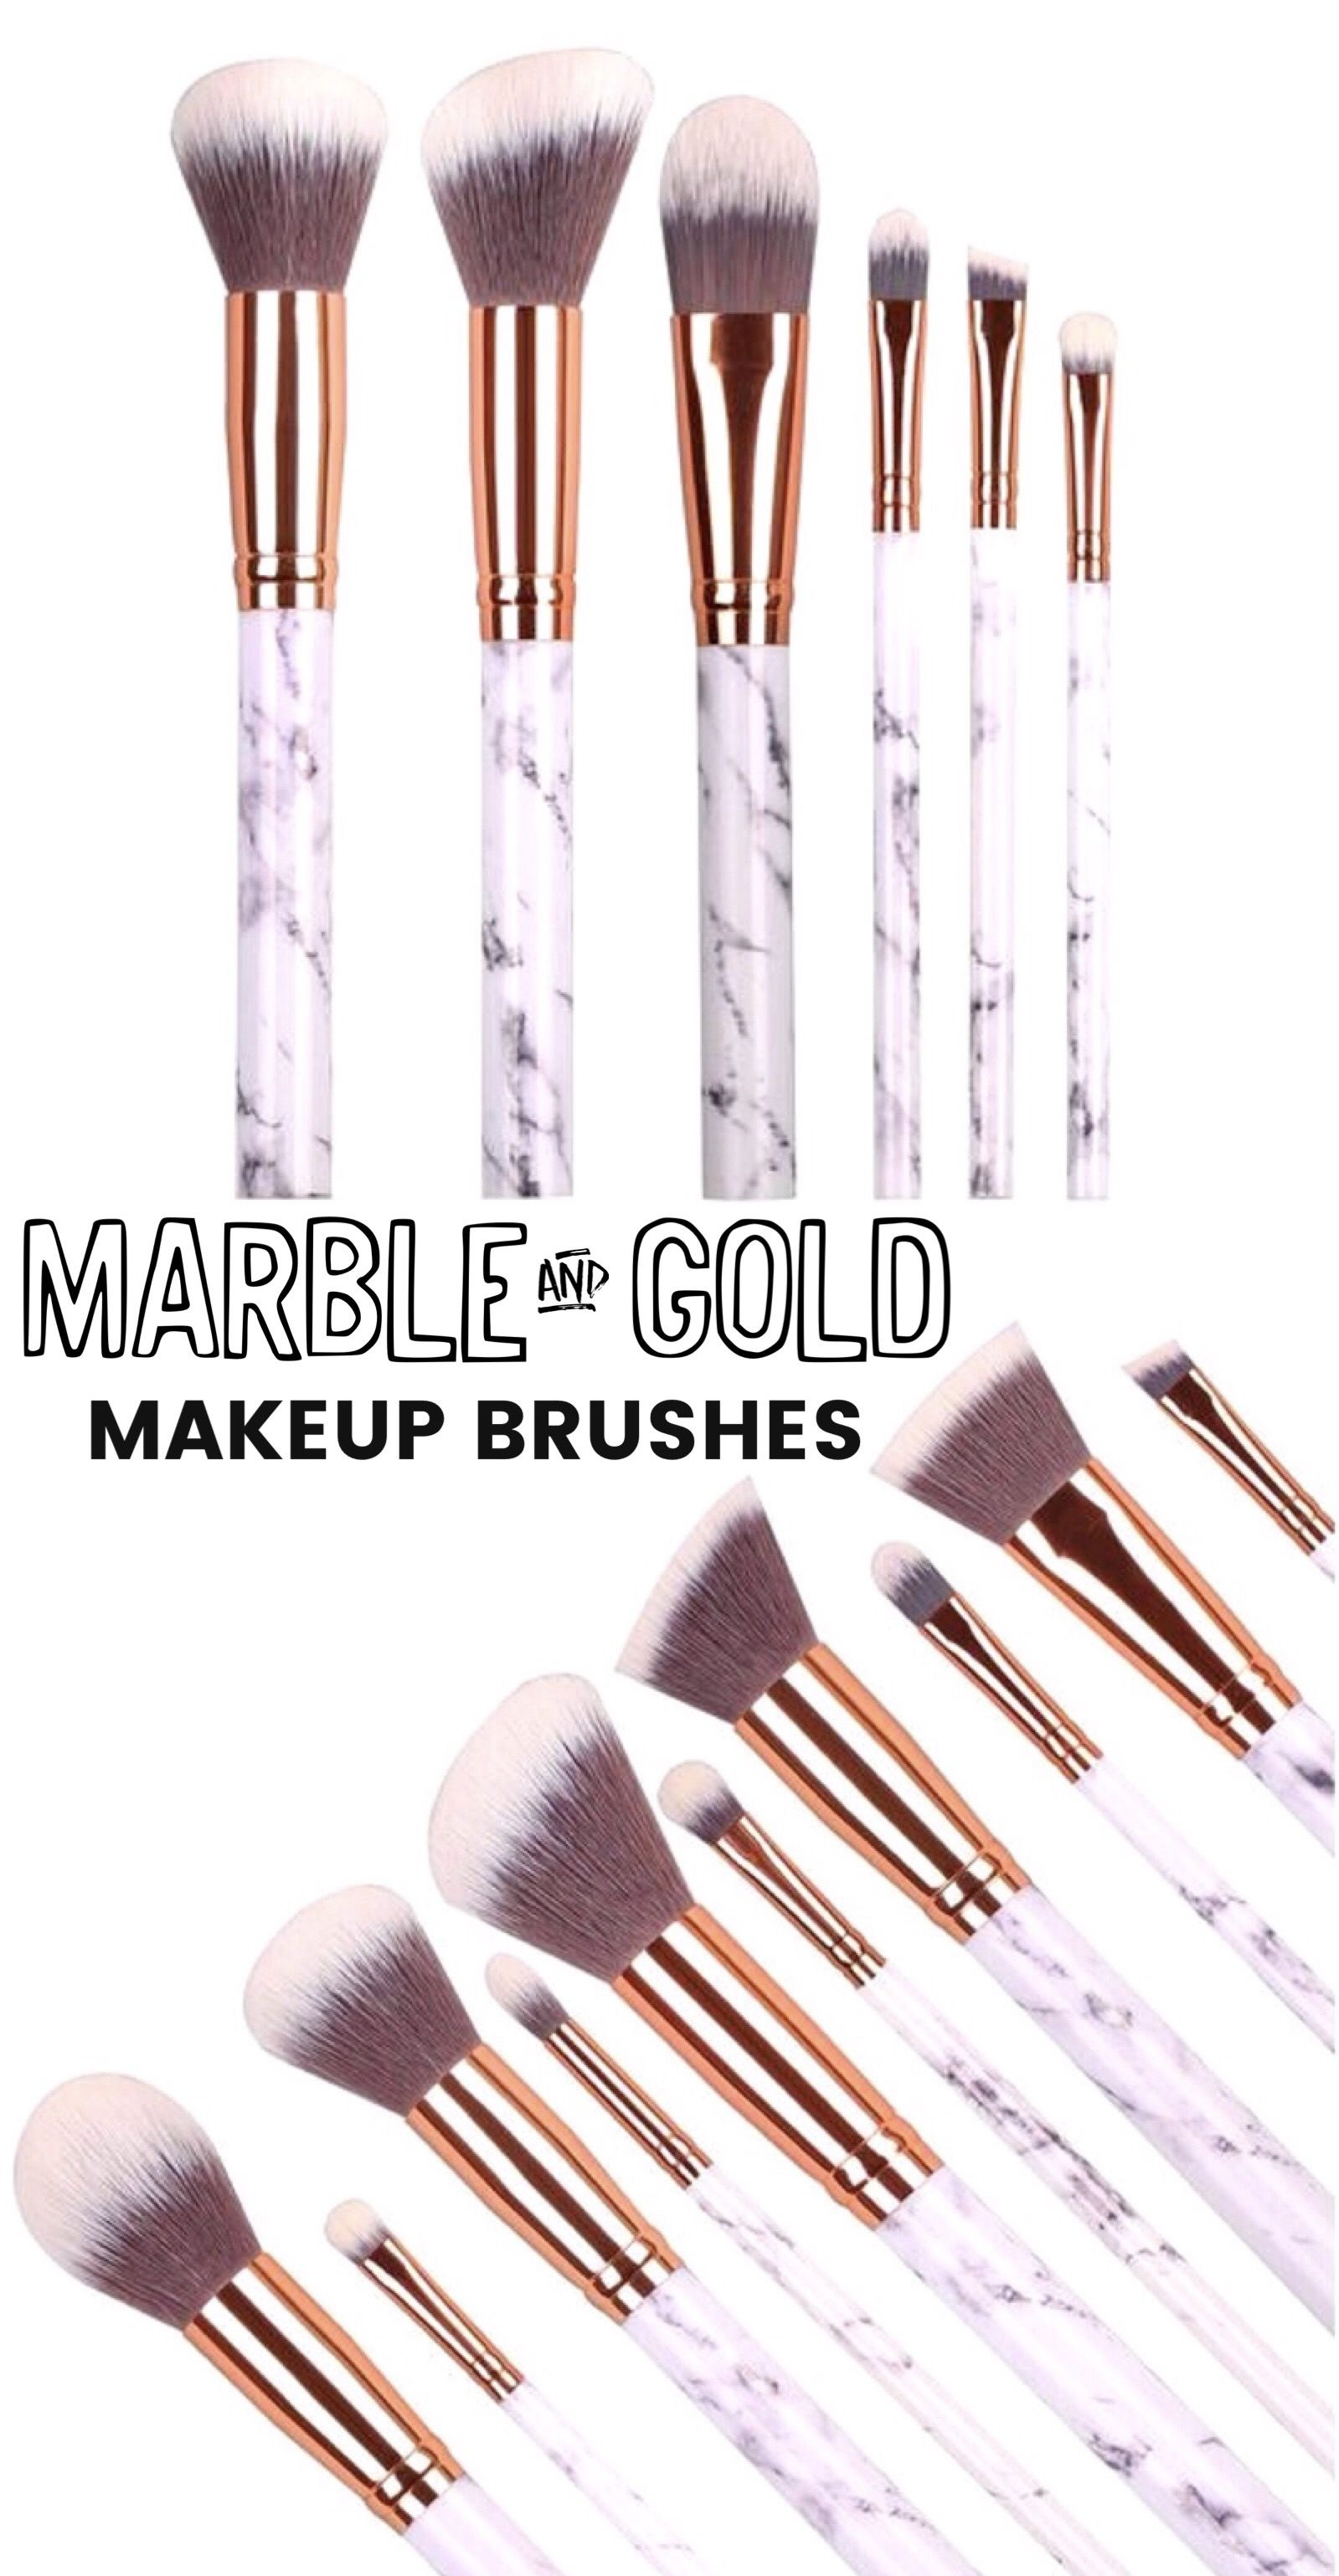 spectrum makeup brushes marble. marble and gold luxury makeup brush set perfect for contouring, foundation, eyeshadow more spectrum brushes